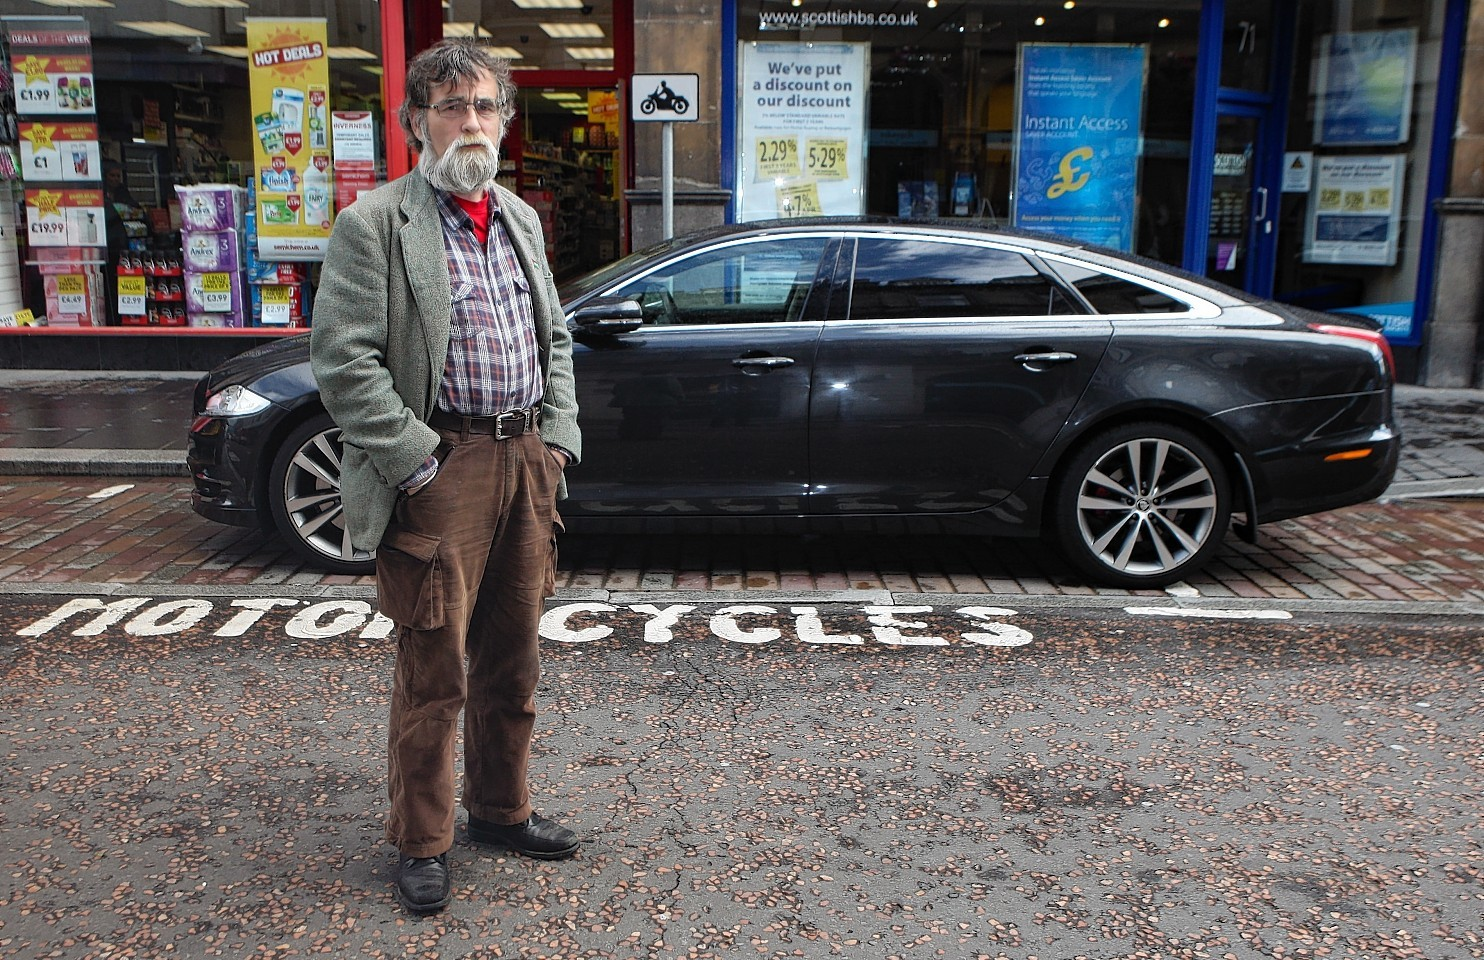 Highland Councillor Donnie Kerr with a car parked in a motor cycle bay on Queensgate, Inverness.